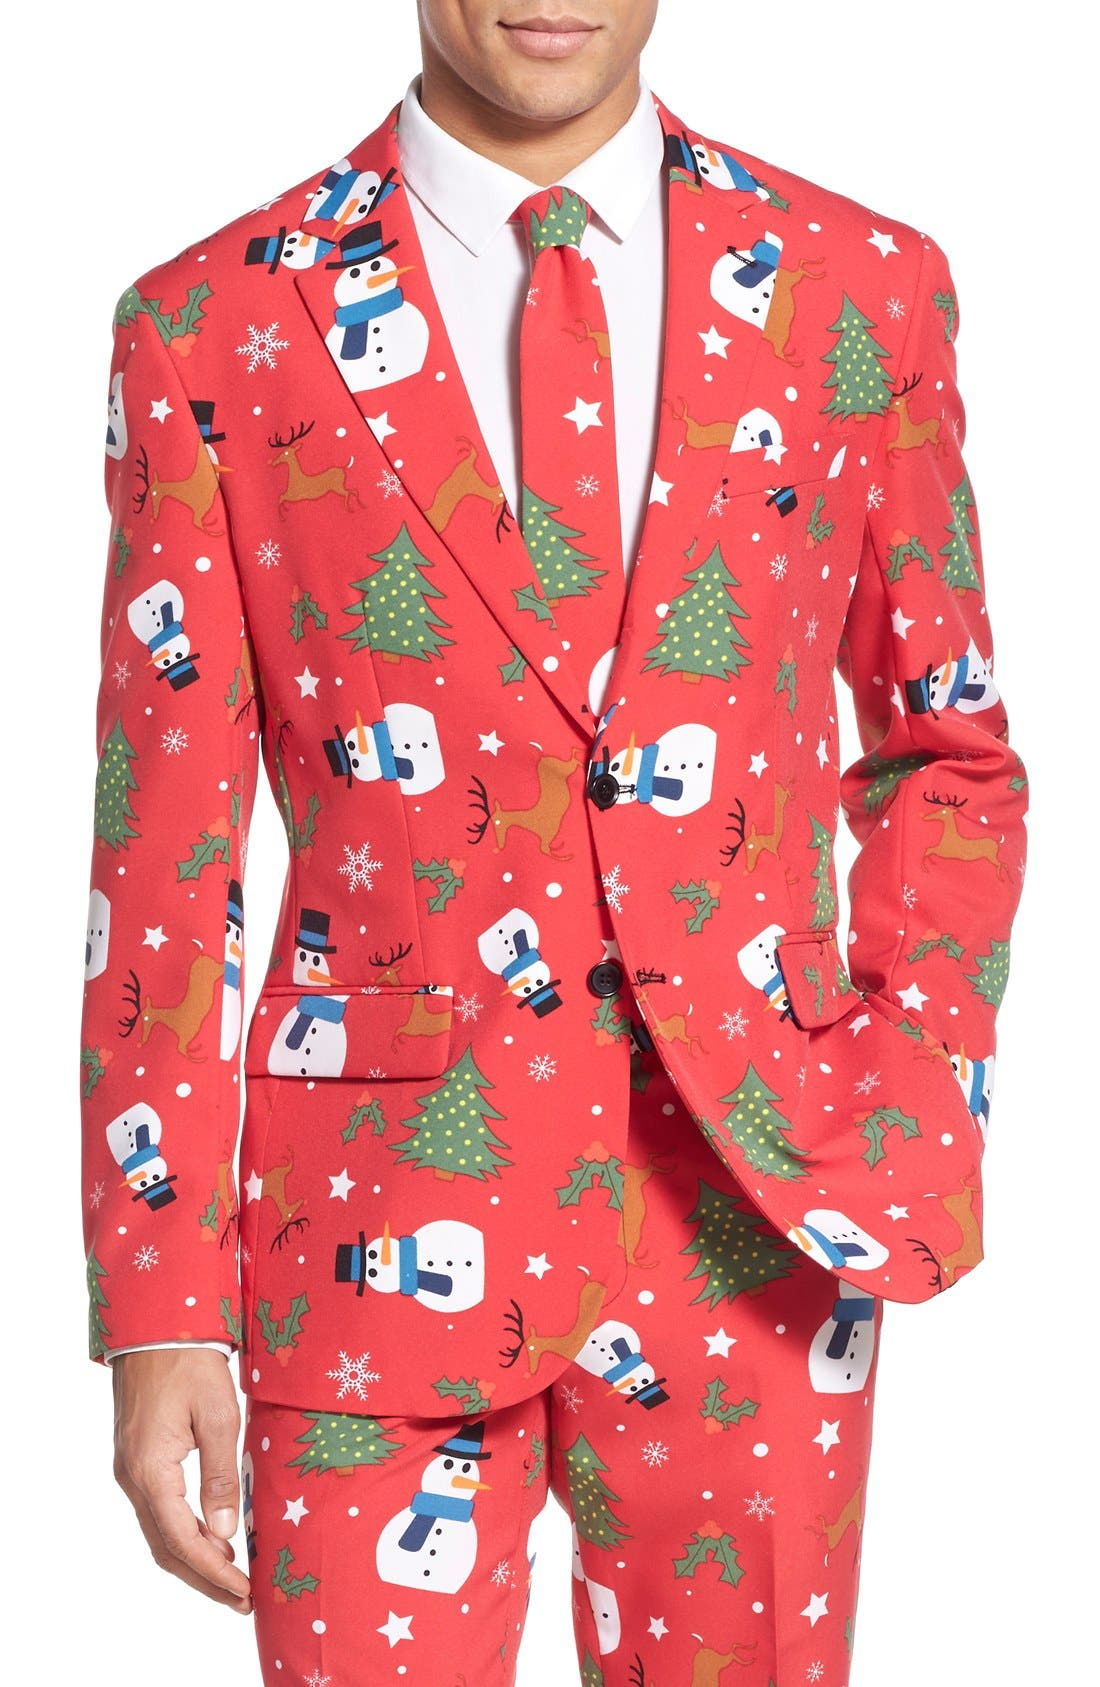 'Christmaster' Holiday Suit & Tie,                             Alternate thumbnail 2, color,                             600